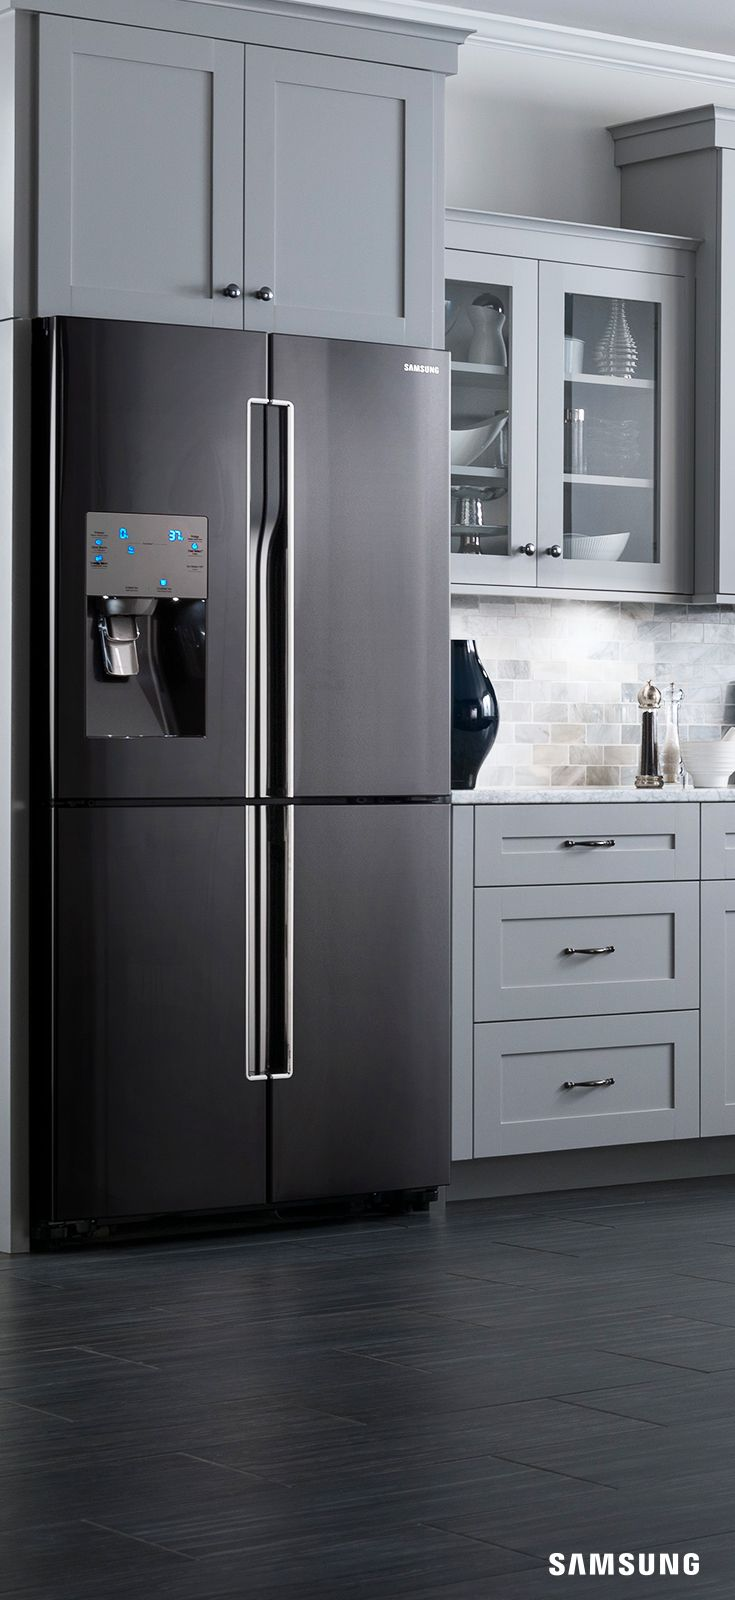 The Next Thing In Kitchen Inspiration Is The Samsung Black Stainless Steel 4 Door Flex